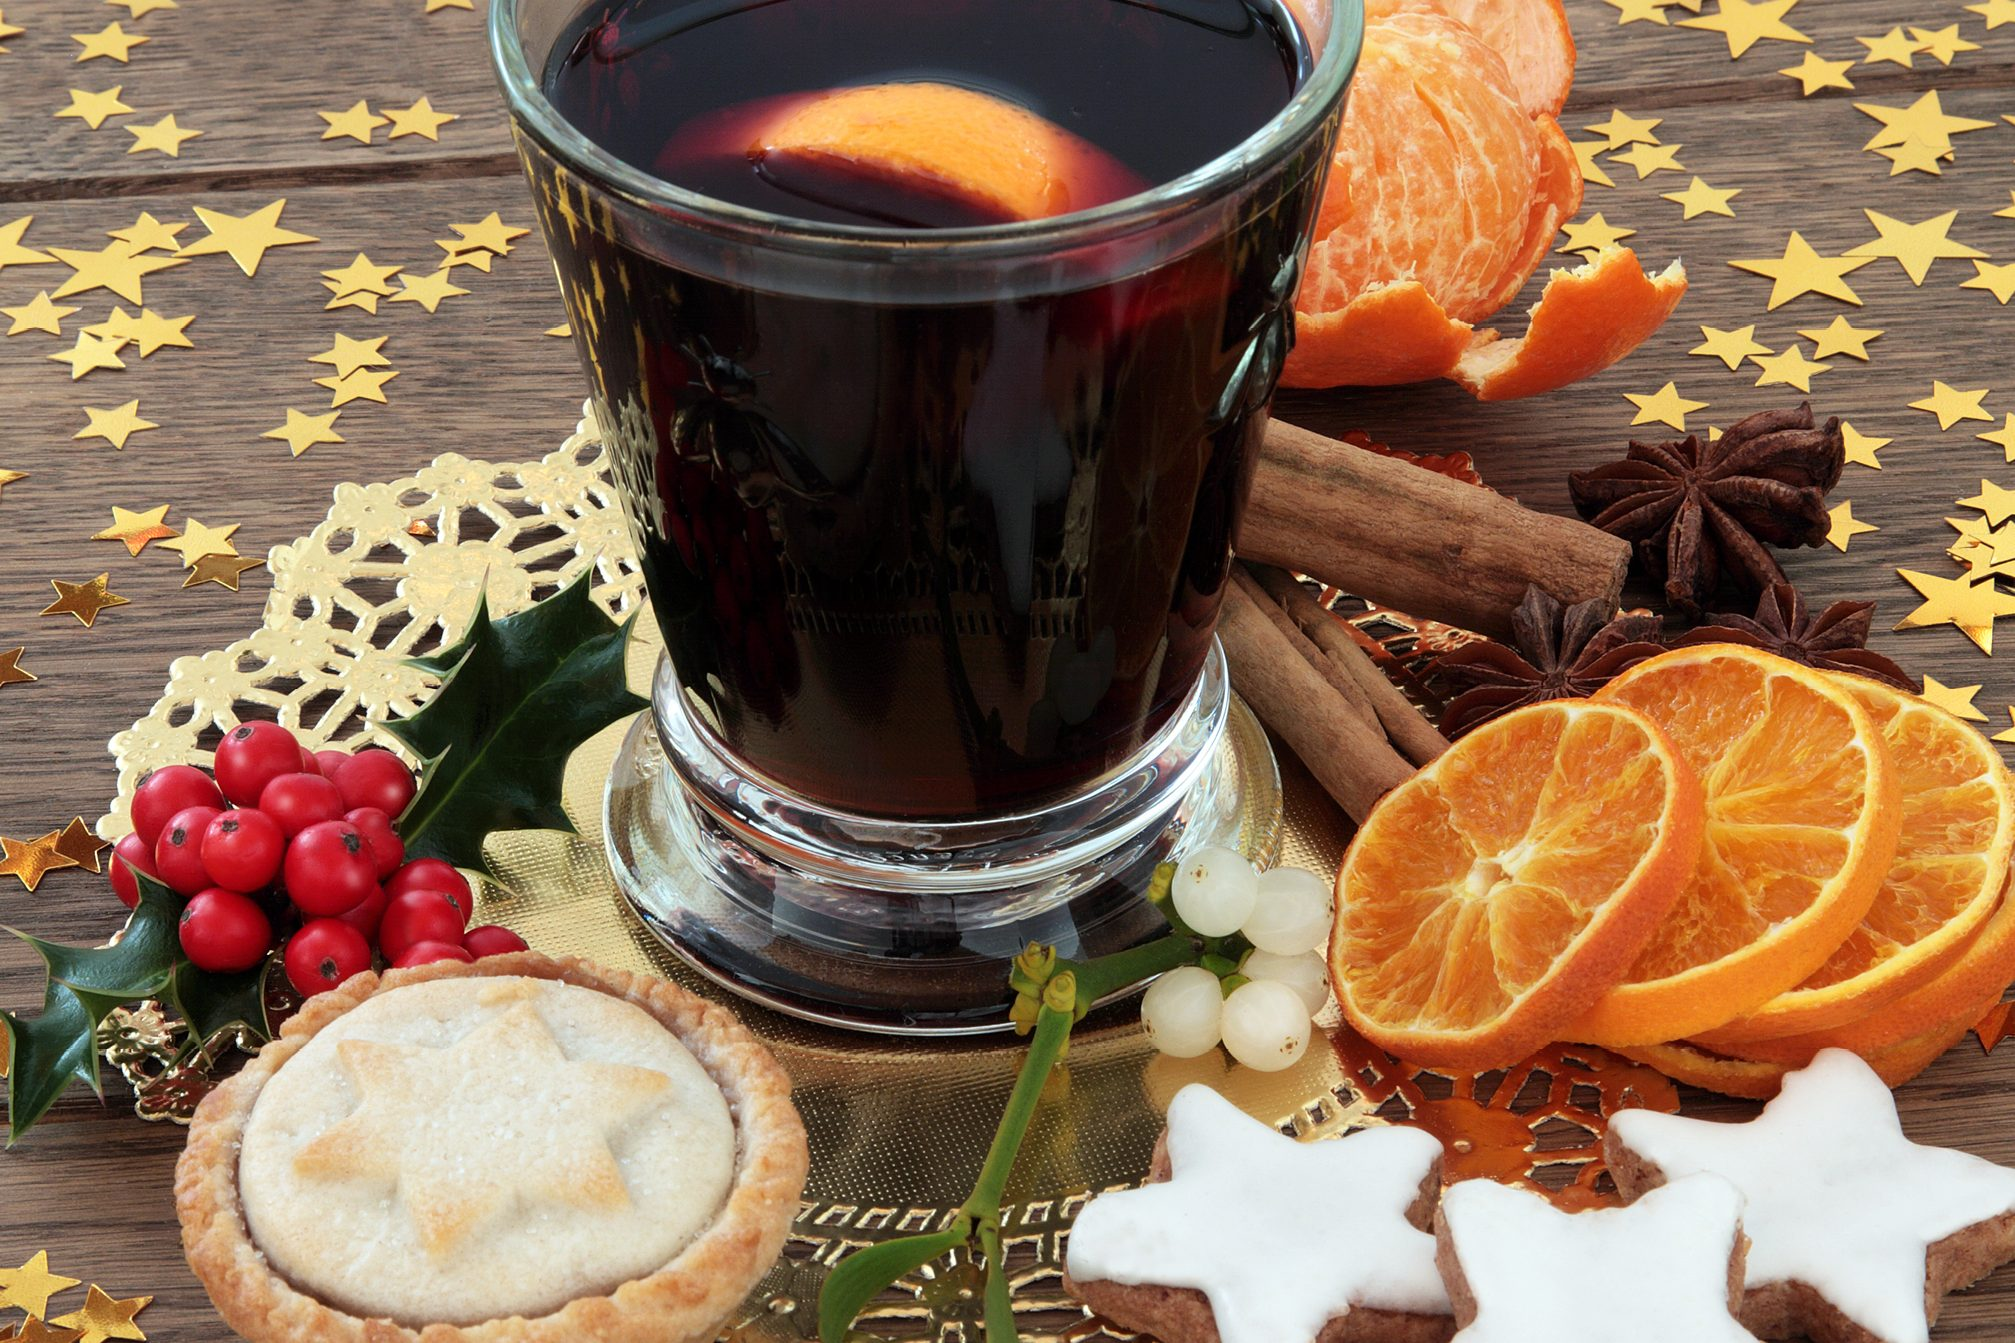 Charter Phone Service >> Mince pies and mulled wine - University of Kent